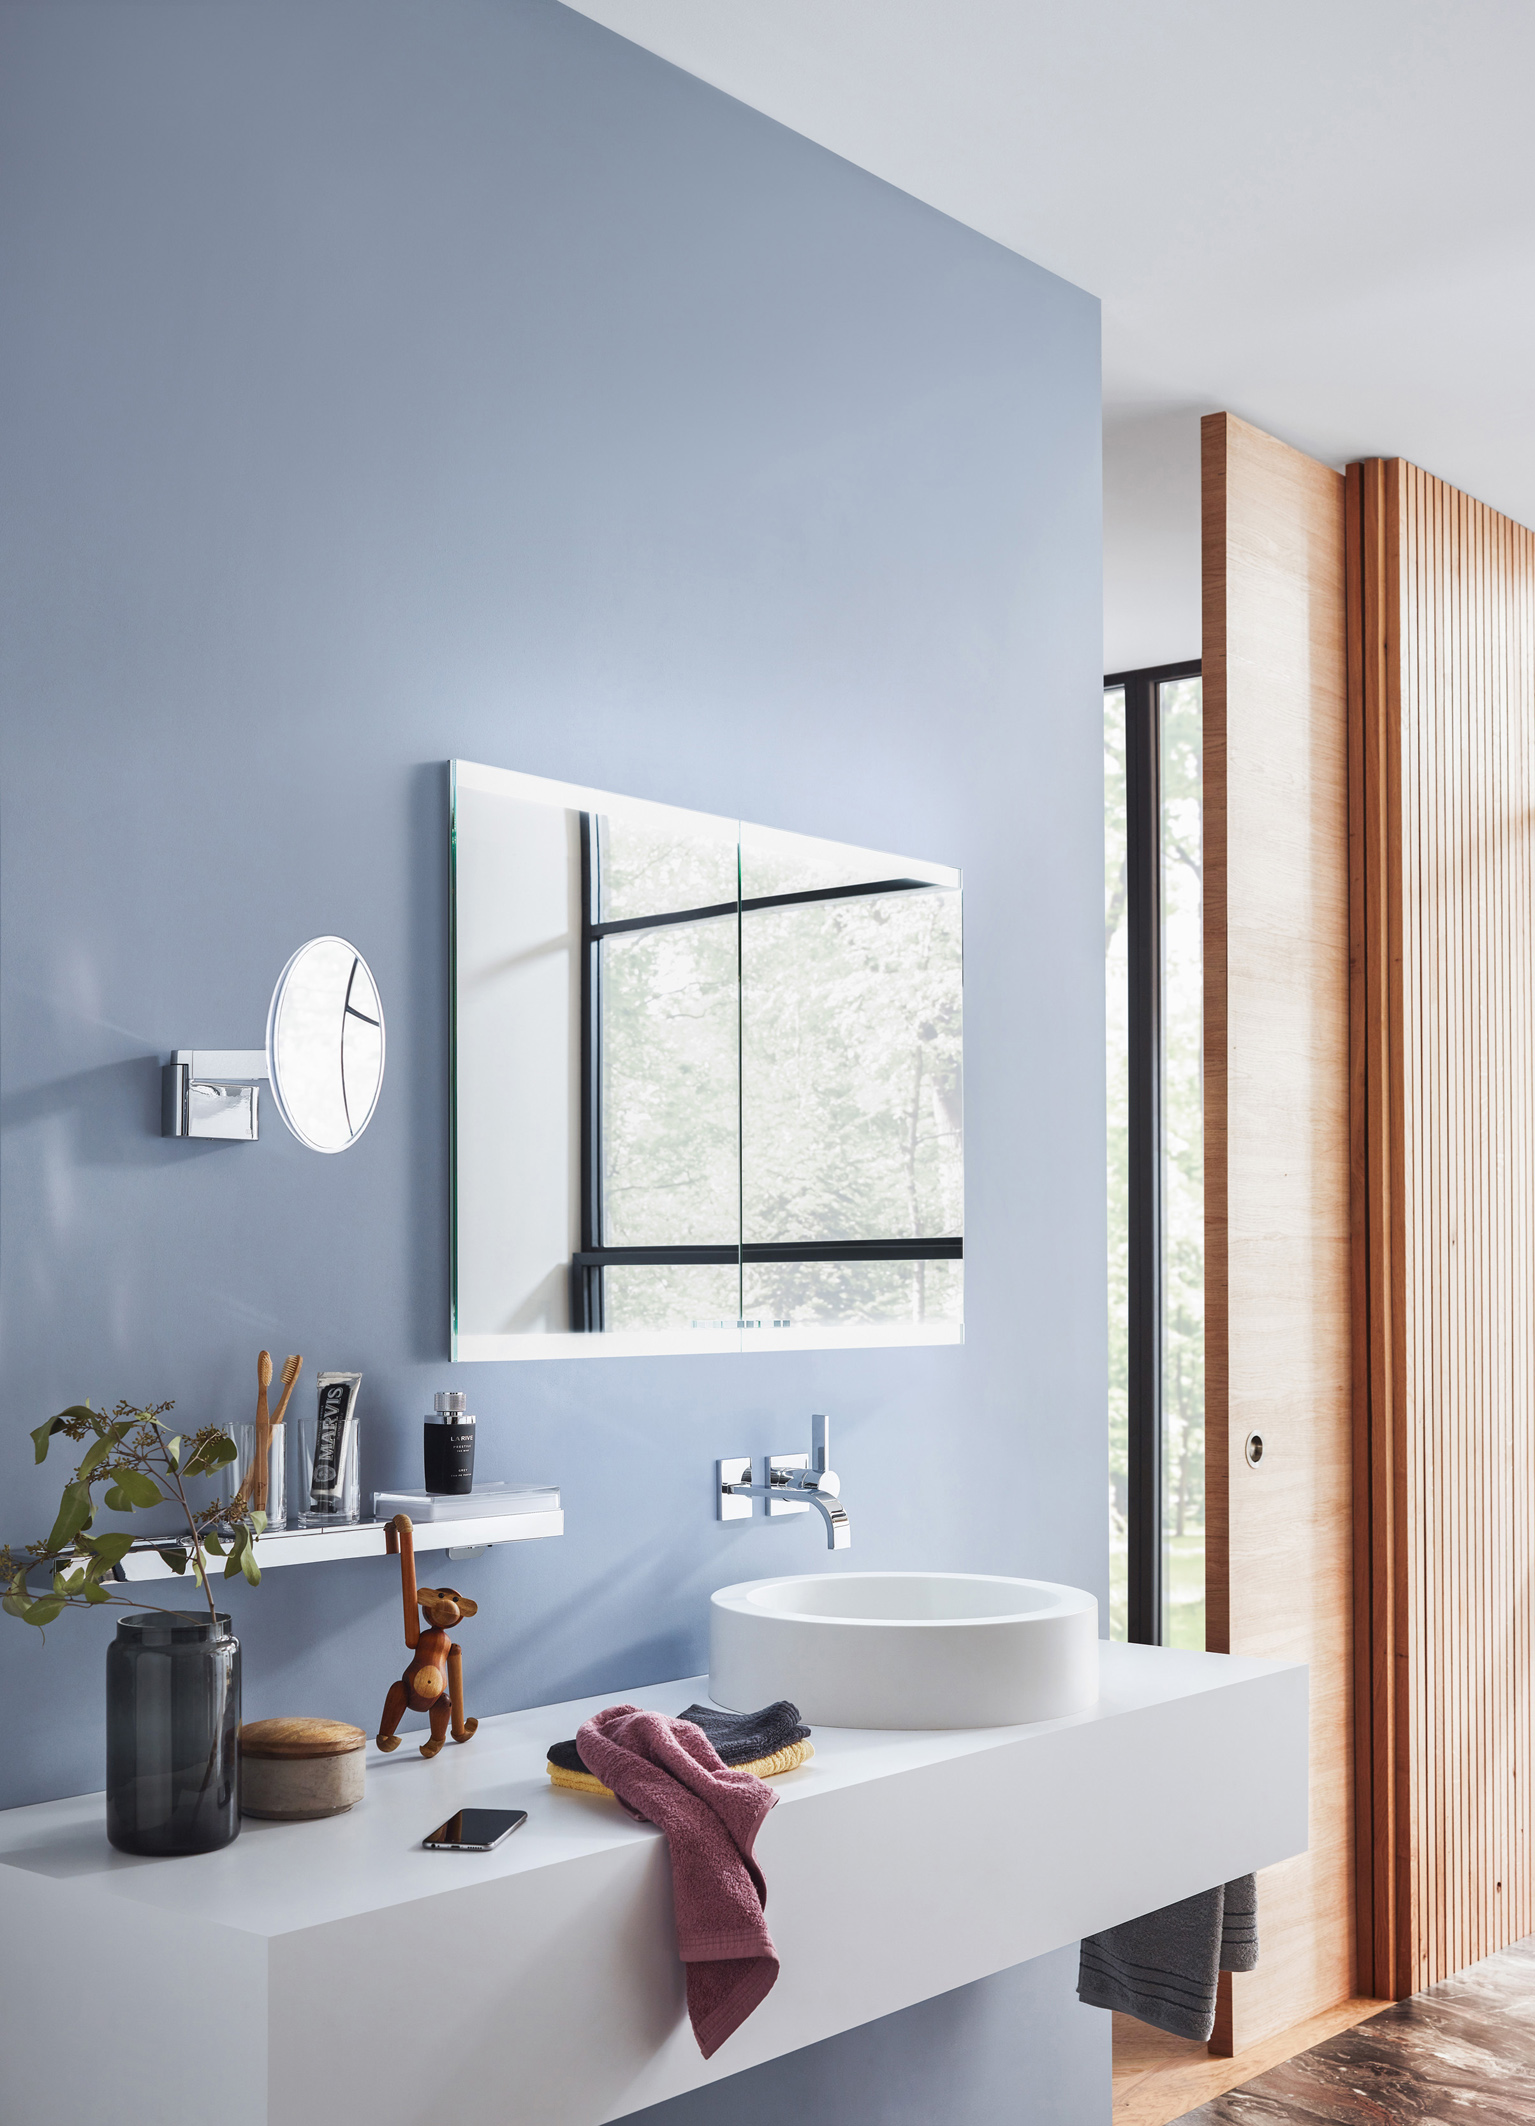 Emco Bad At The Ish 2019 Illuminated Mirror Cabinet With Adjustable Ambient Lighting Emco